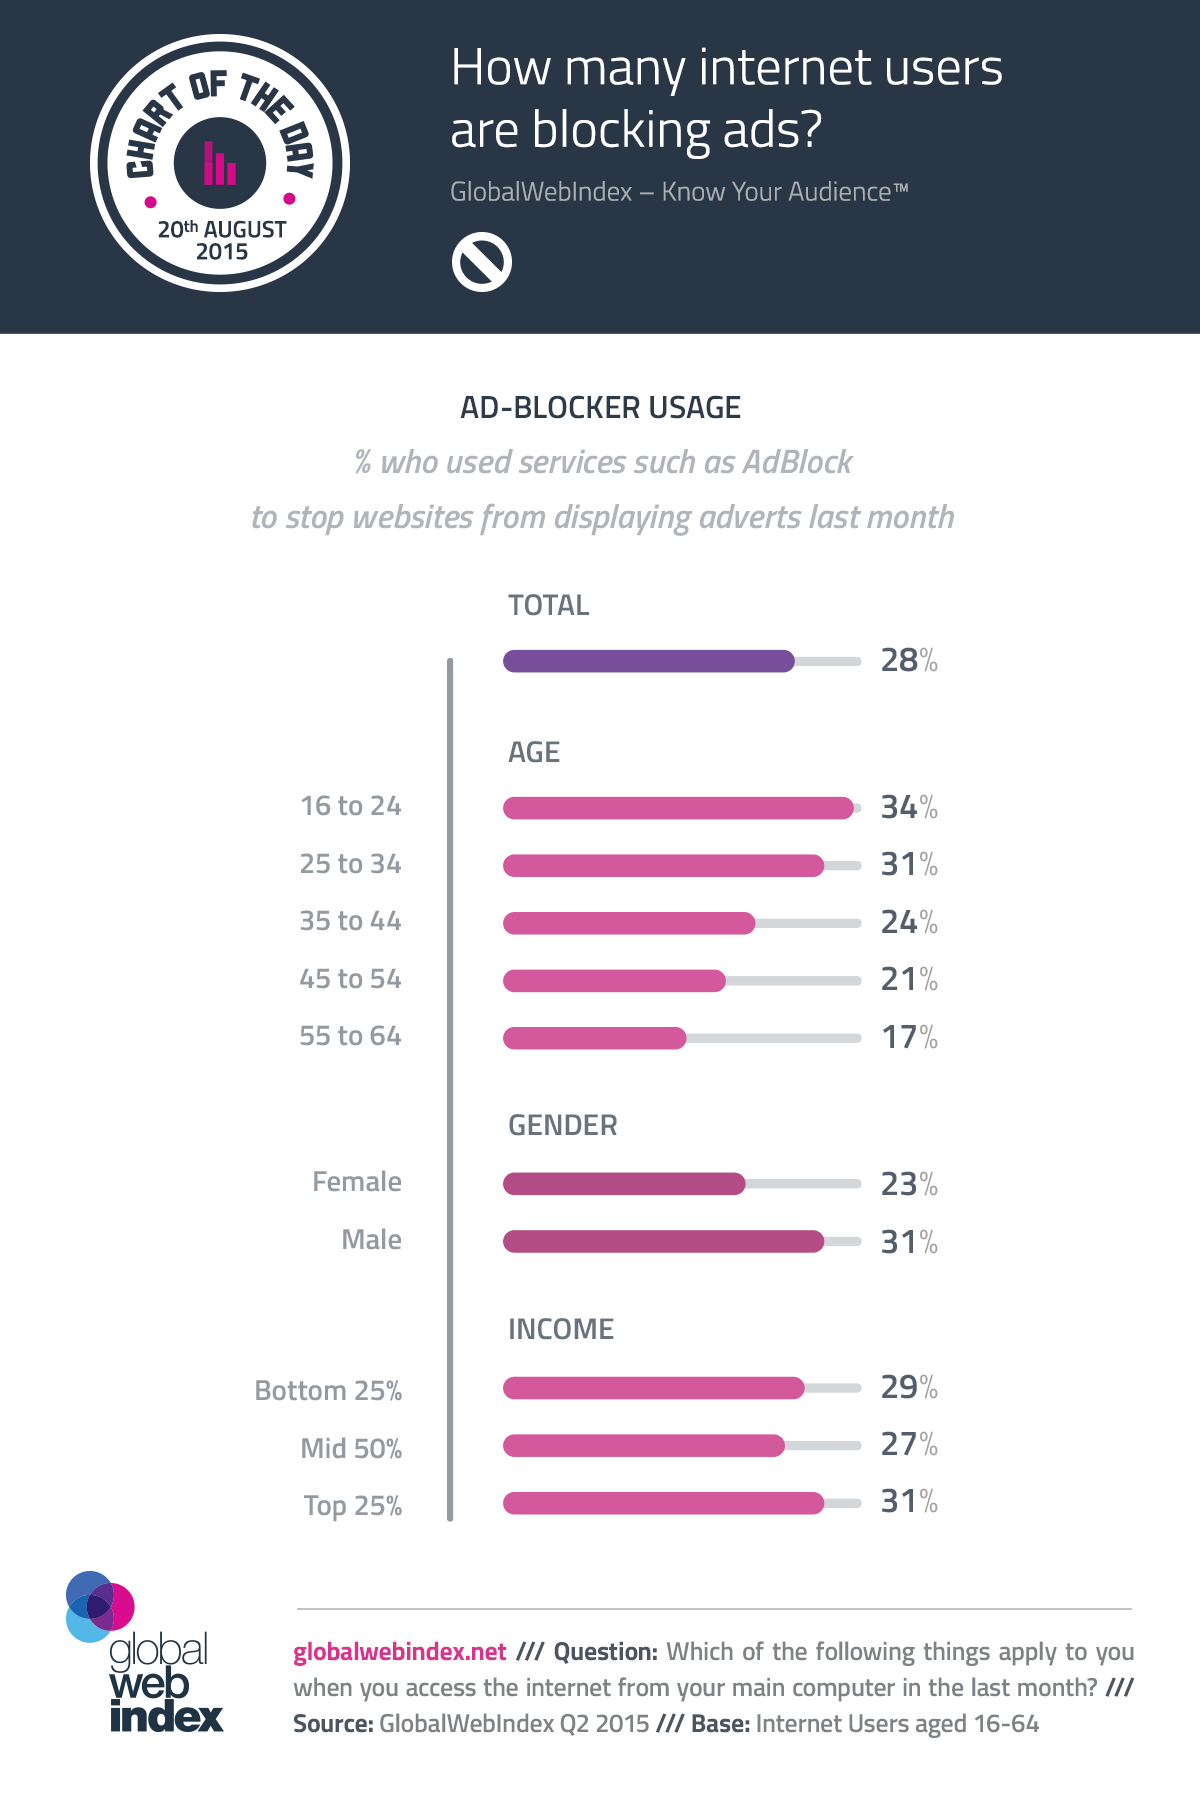 How Many Internet Users are Blocking Ads?